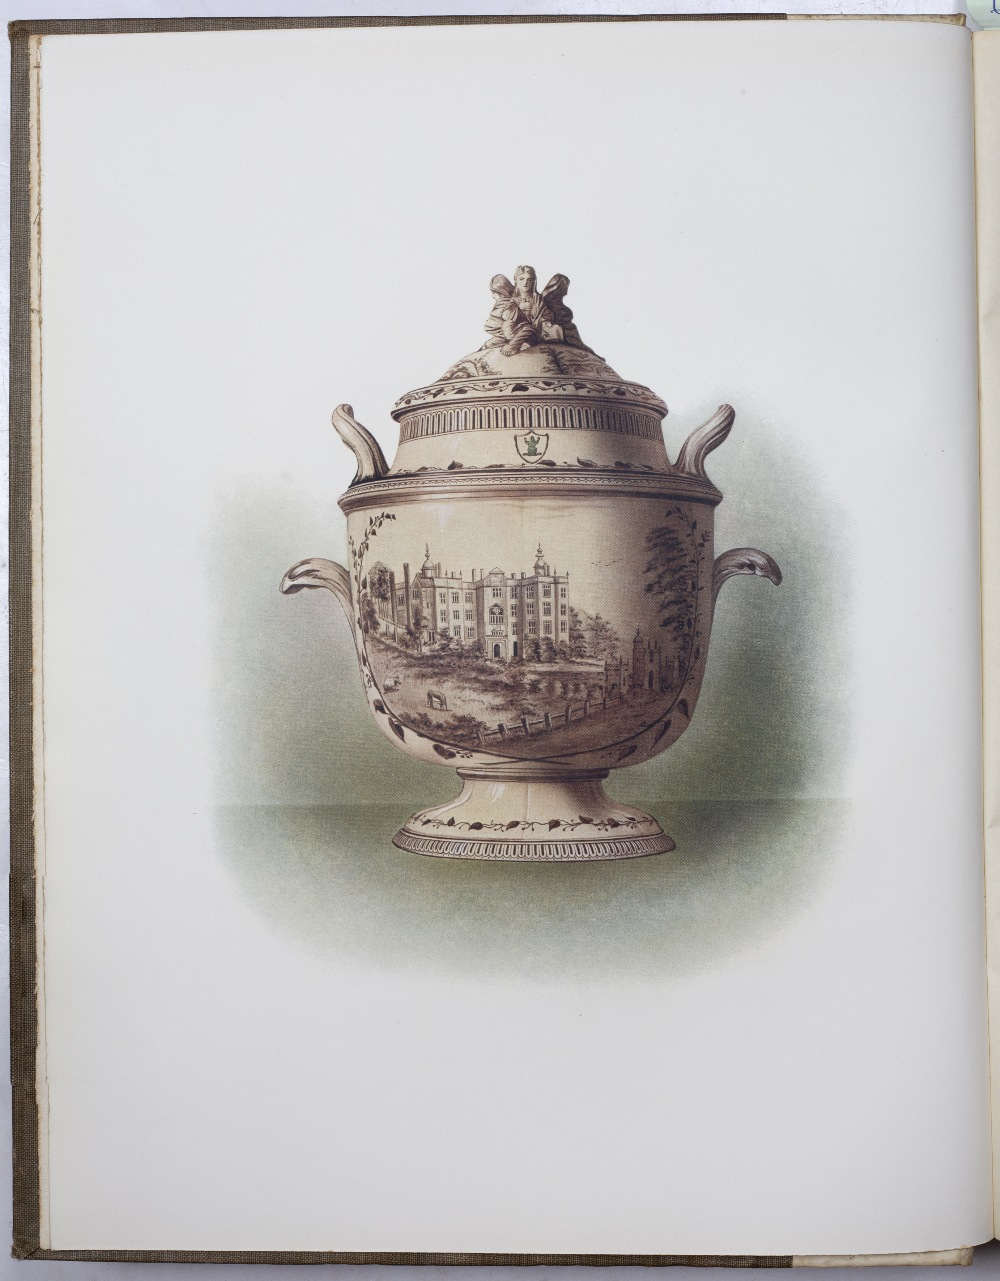 METEYARD, Eliza, 'The Life of Josiah Wedgwood from his Private Correspondence and Family Papers'. - Image 4 of 6